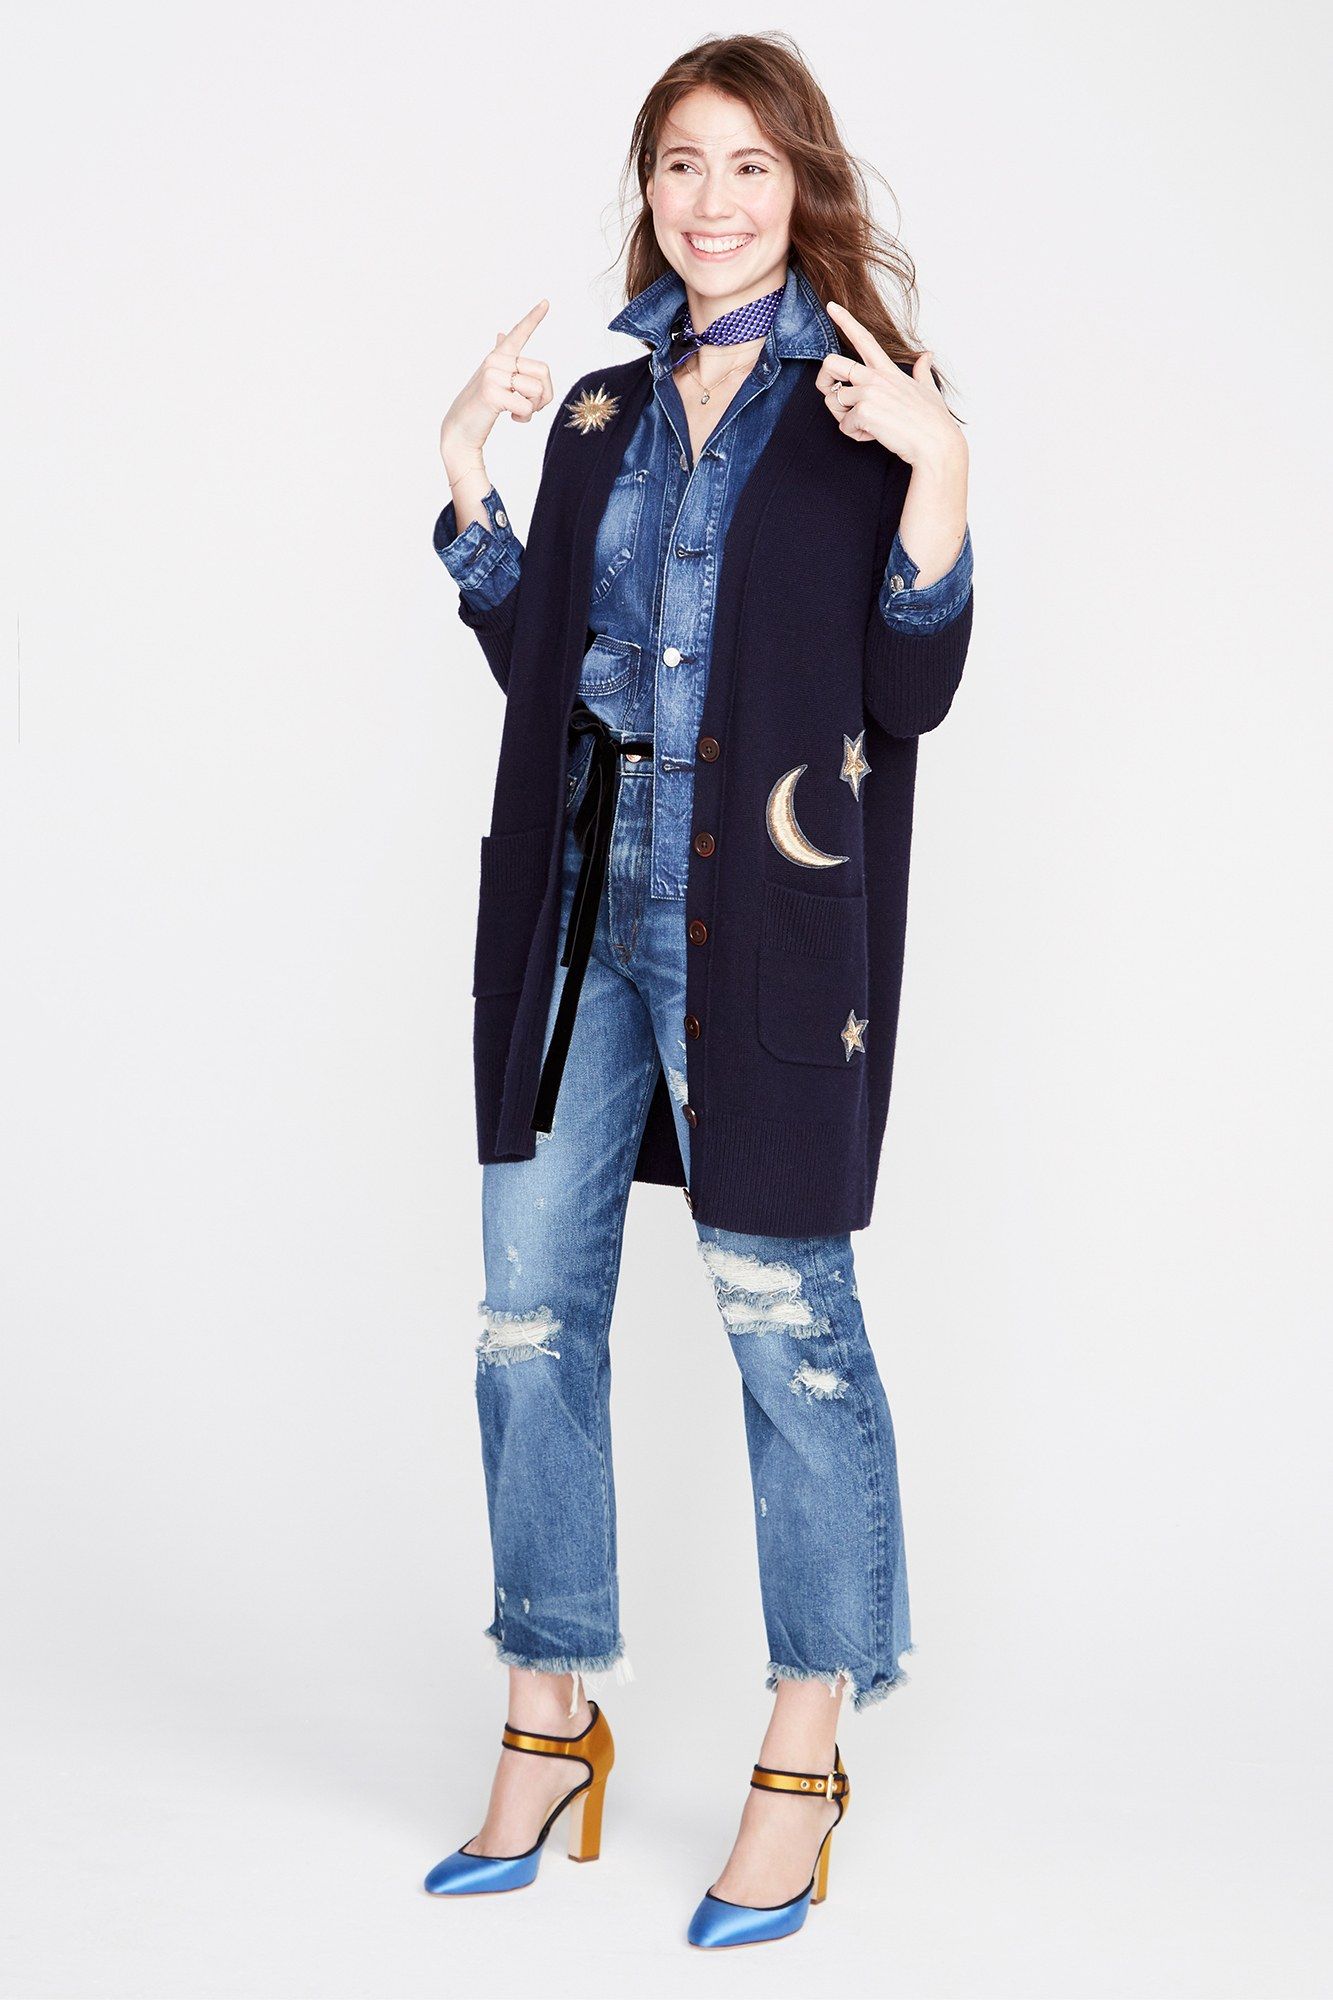 The Fall 2017 shows are underway and there is a lot of great inspiration you can reference for Spring. I especially like J.Crew's collection for the denim and utility fabrics. Check out all the designer showers here.